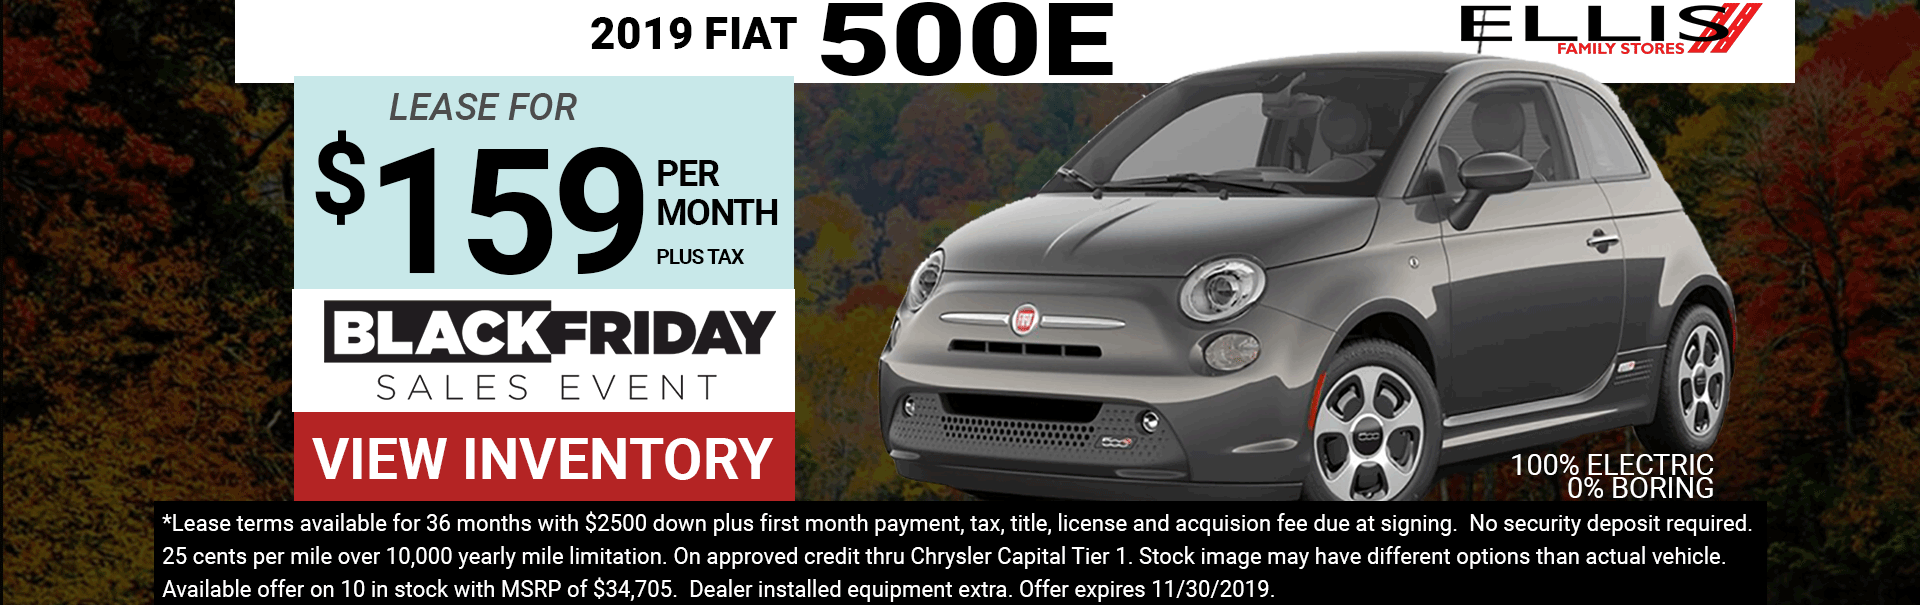 500e Black Friday Lease Special